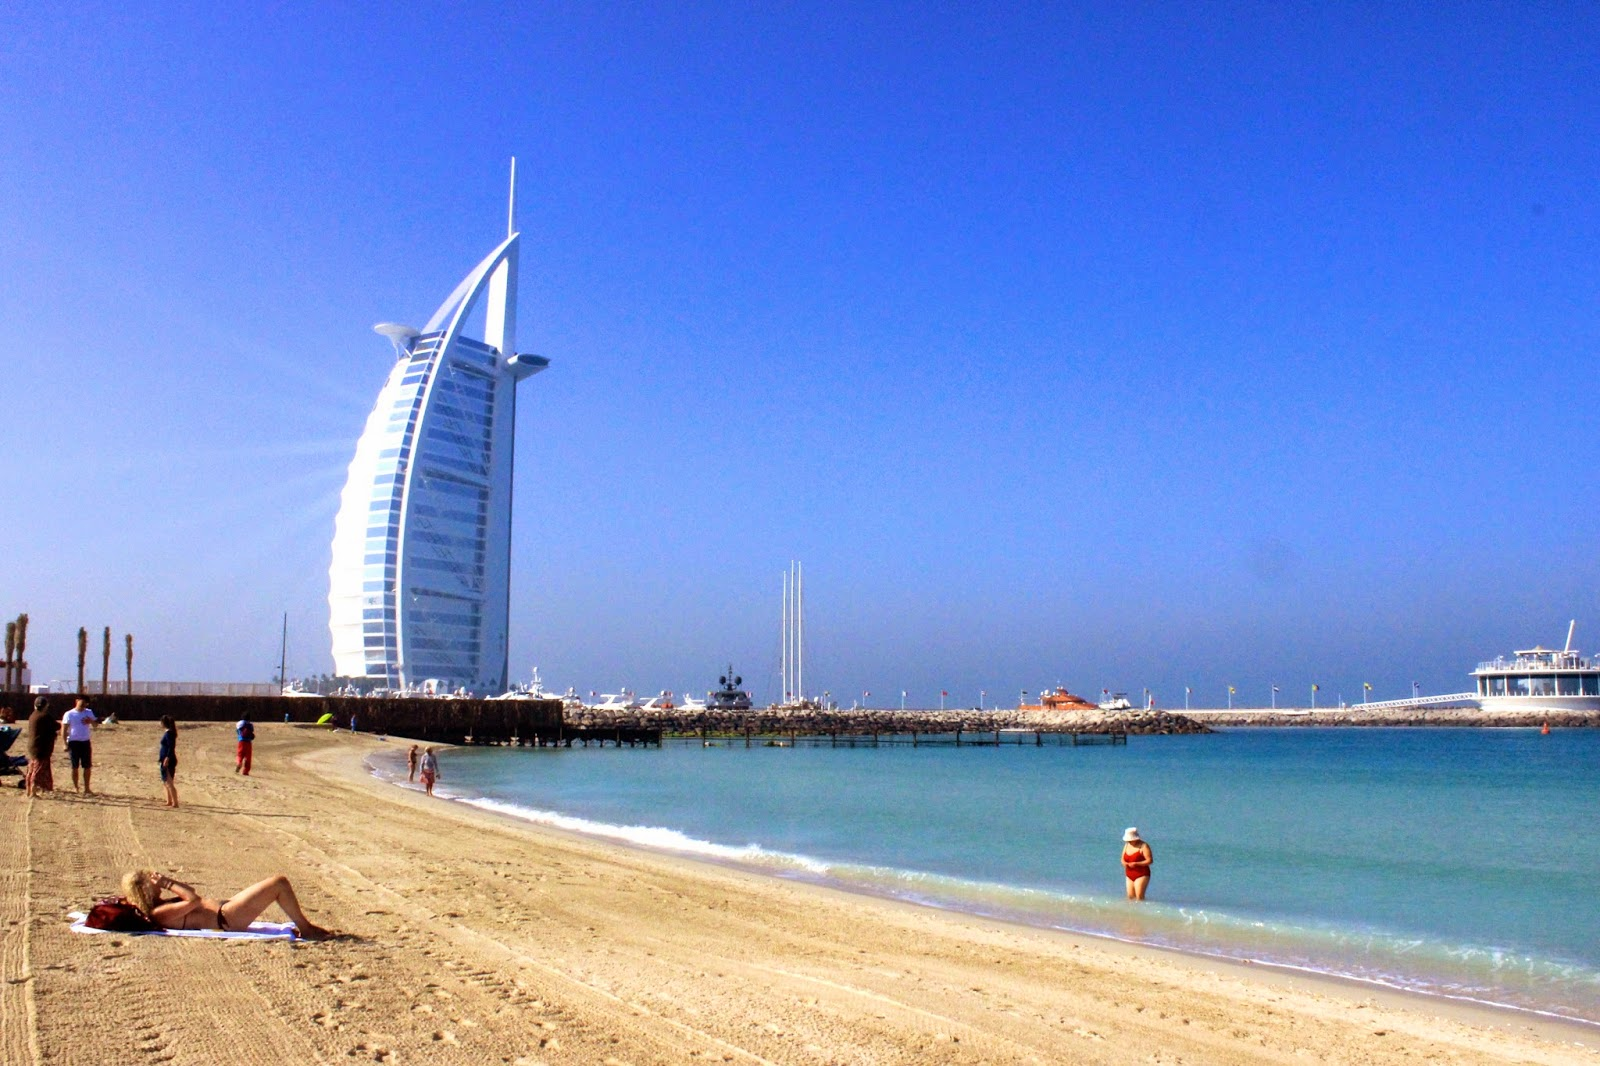 Burj Al Arab from Jumeirah Beach, Dubai, UAE